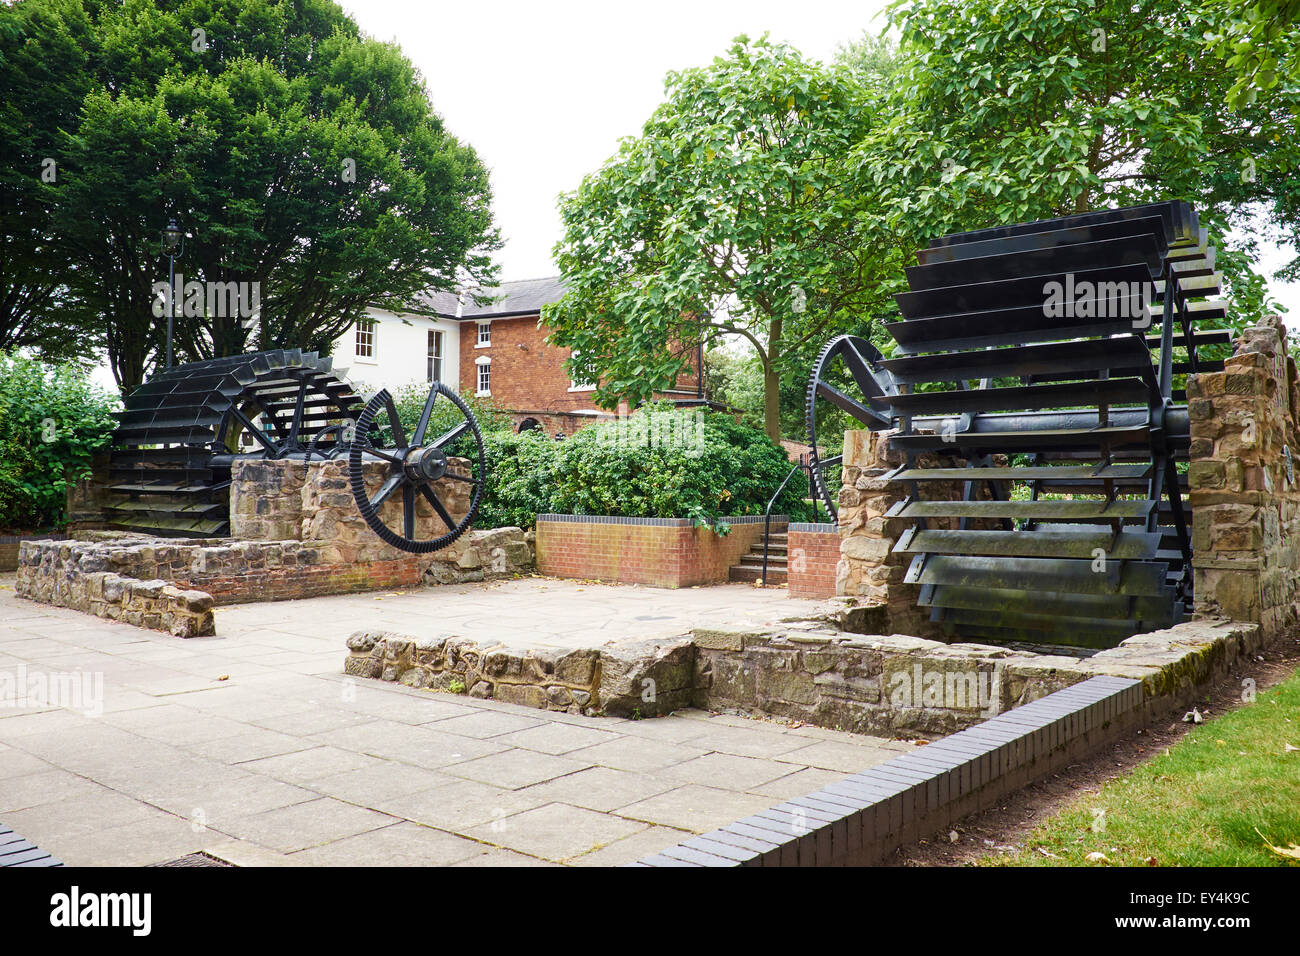 Remains Of The Old Town Mill Built By George Brewster In 1834 Mill Bank Stafford Staffordshire UK - Stock Image